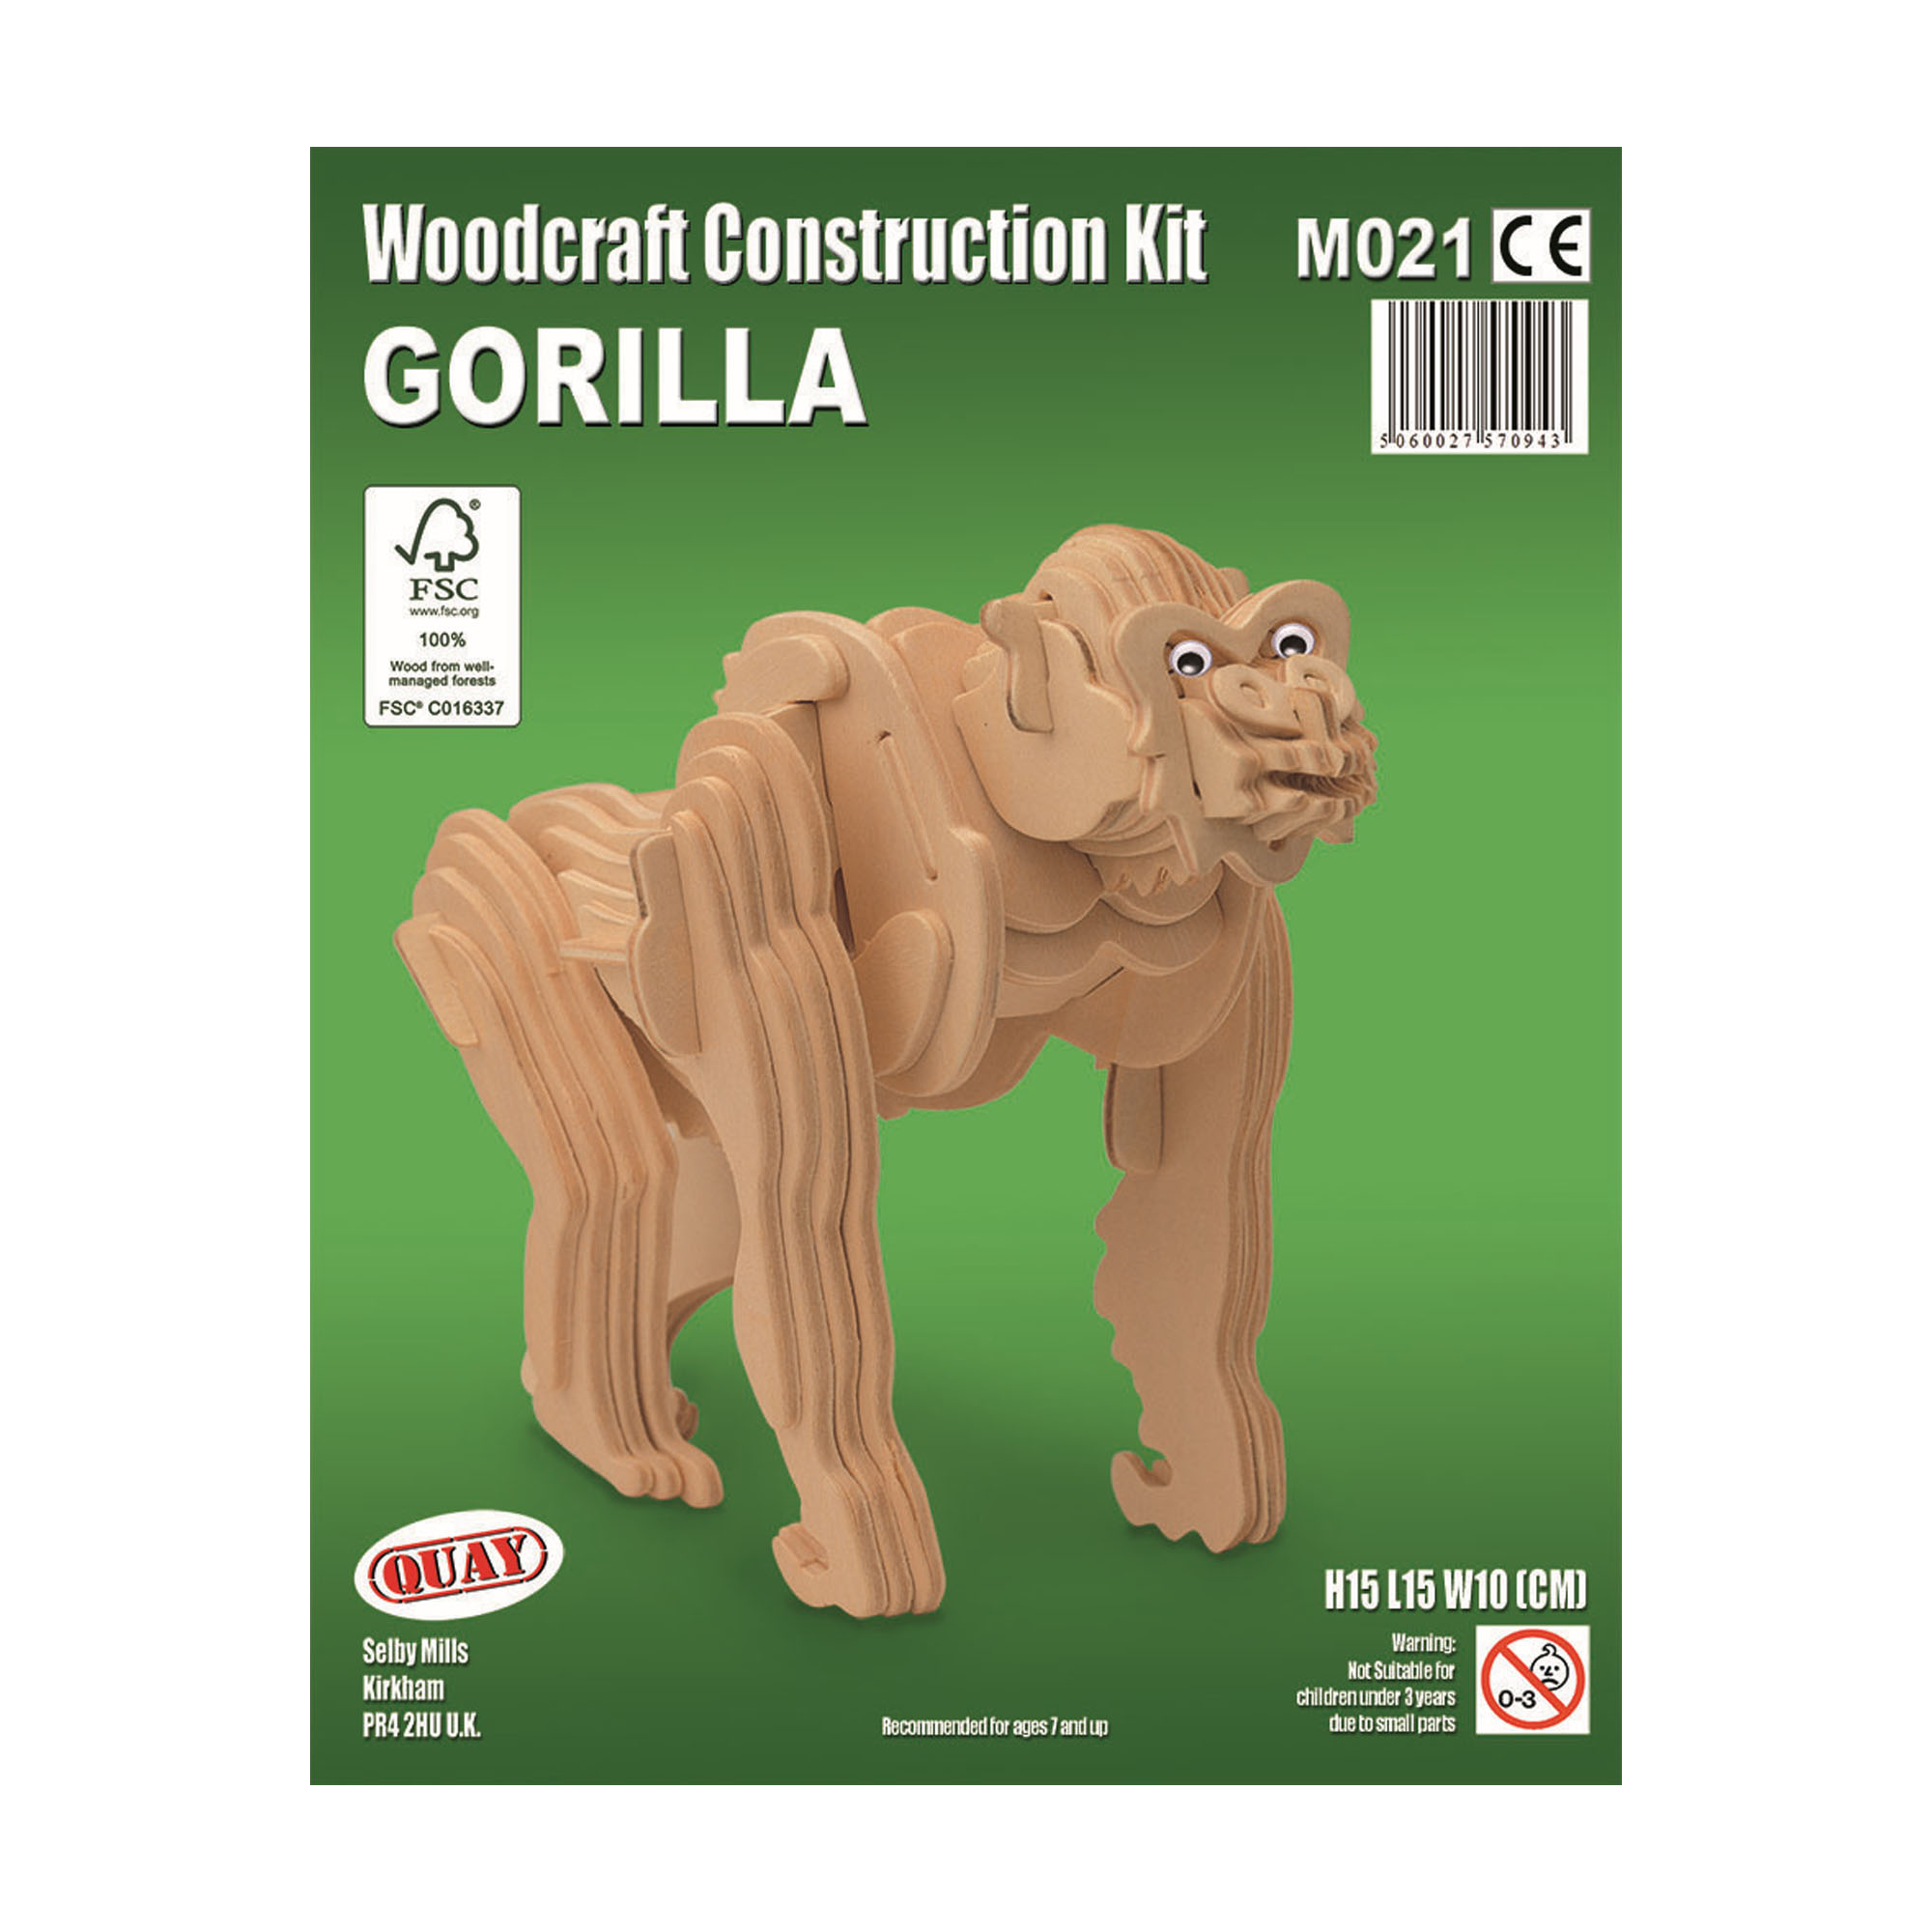 Gorilla Construction Kit